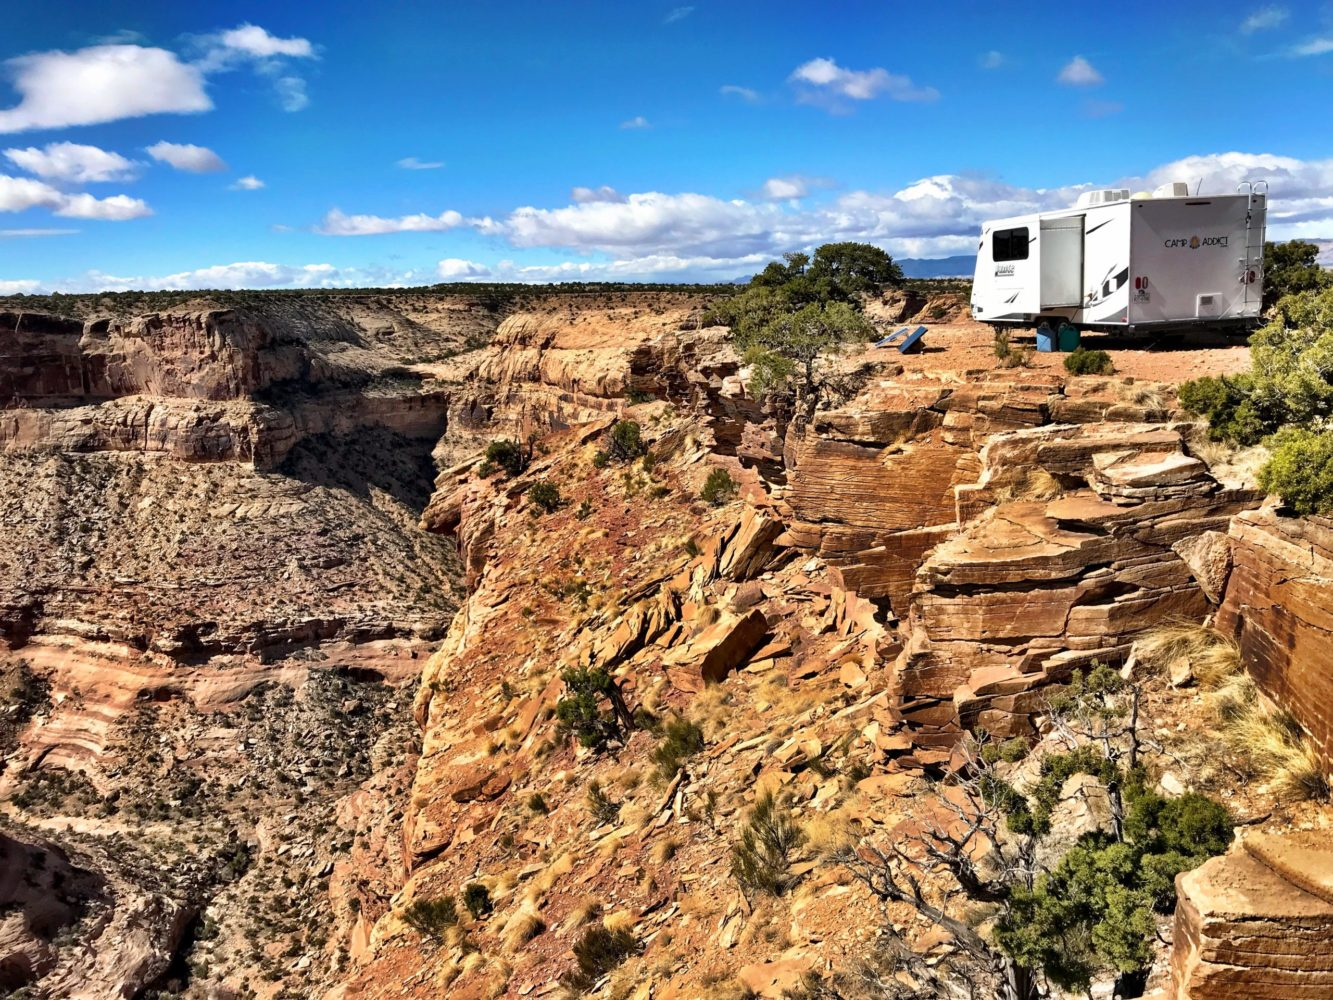 Finding Great Boondocking Spots 2